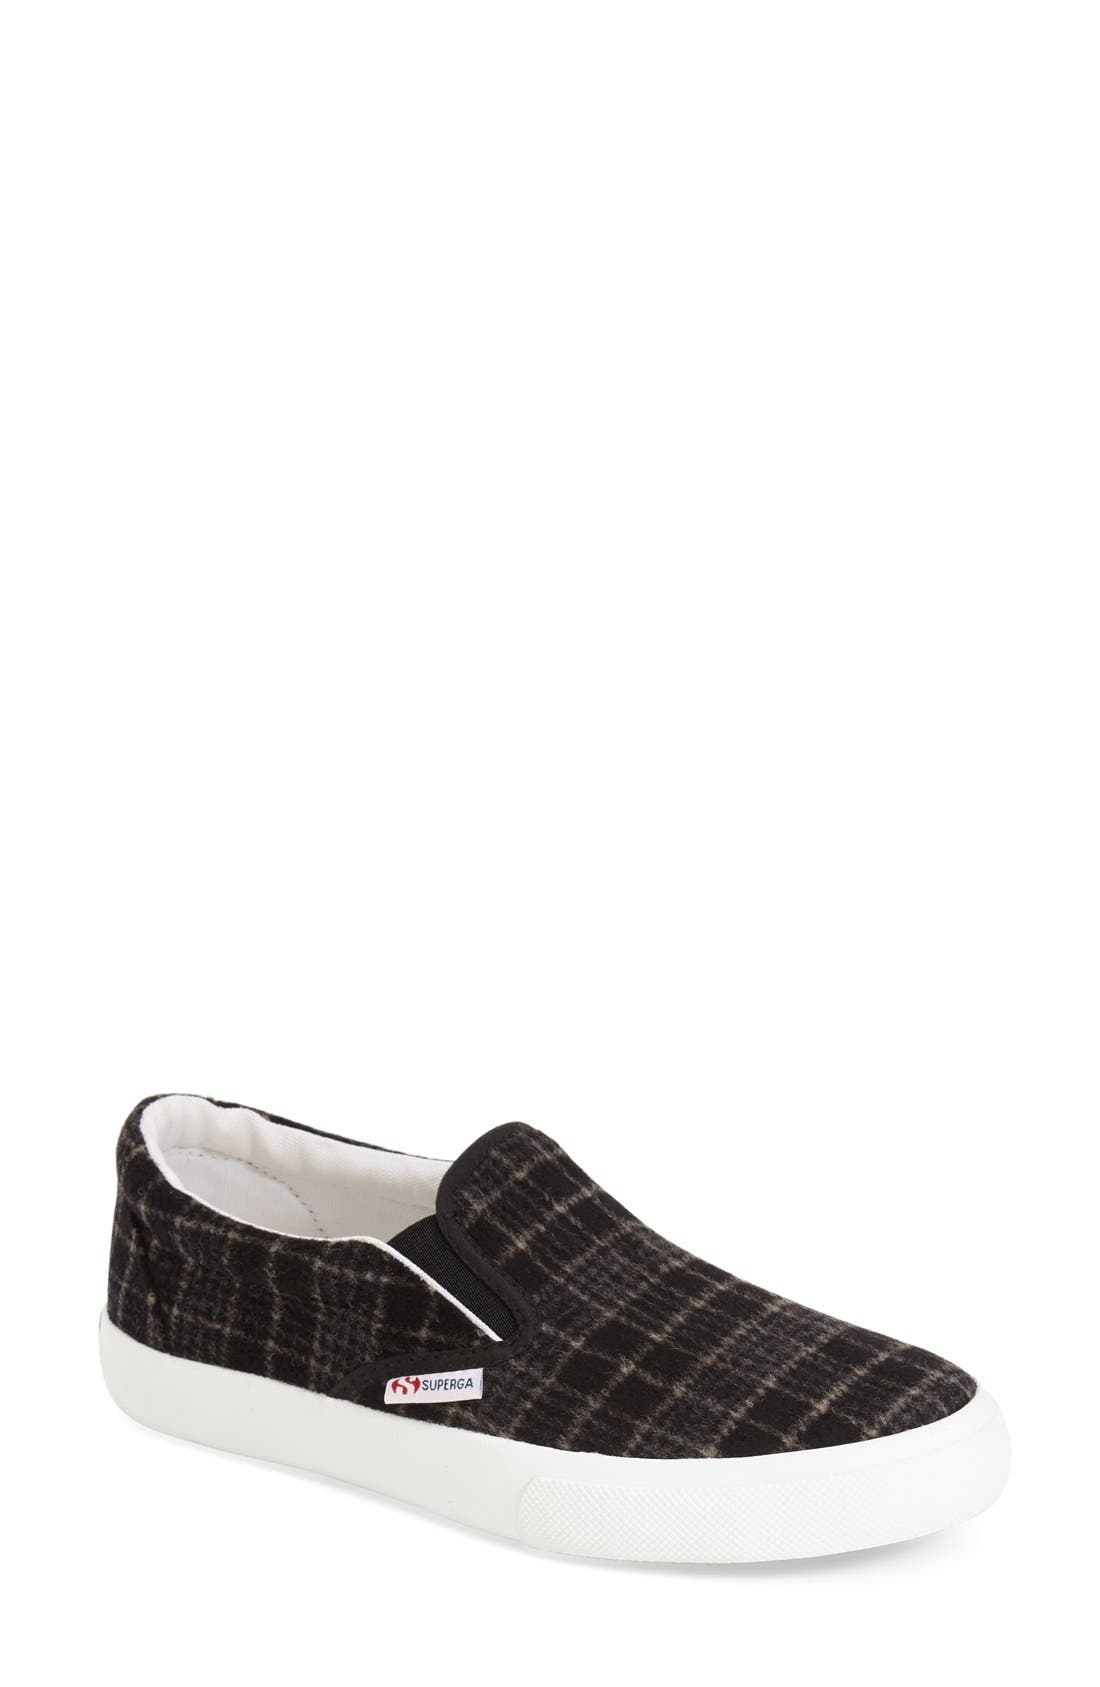 Main Image - Superga Slip-On Sneaker (Women)